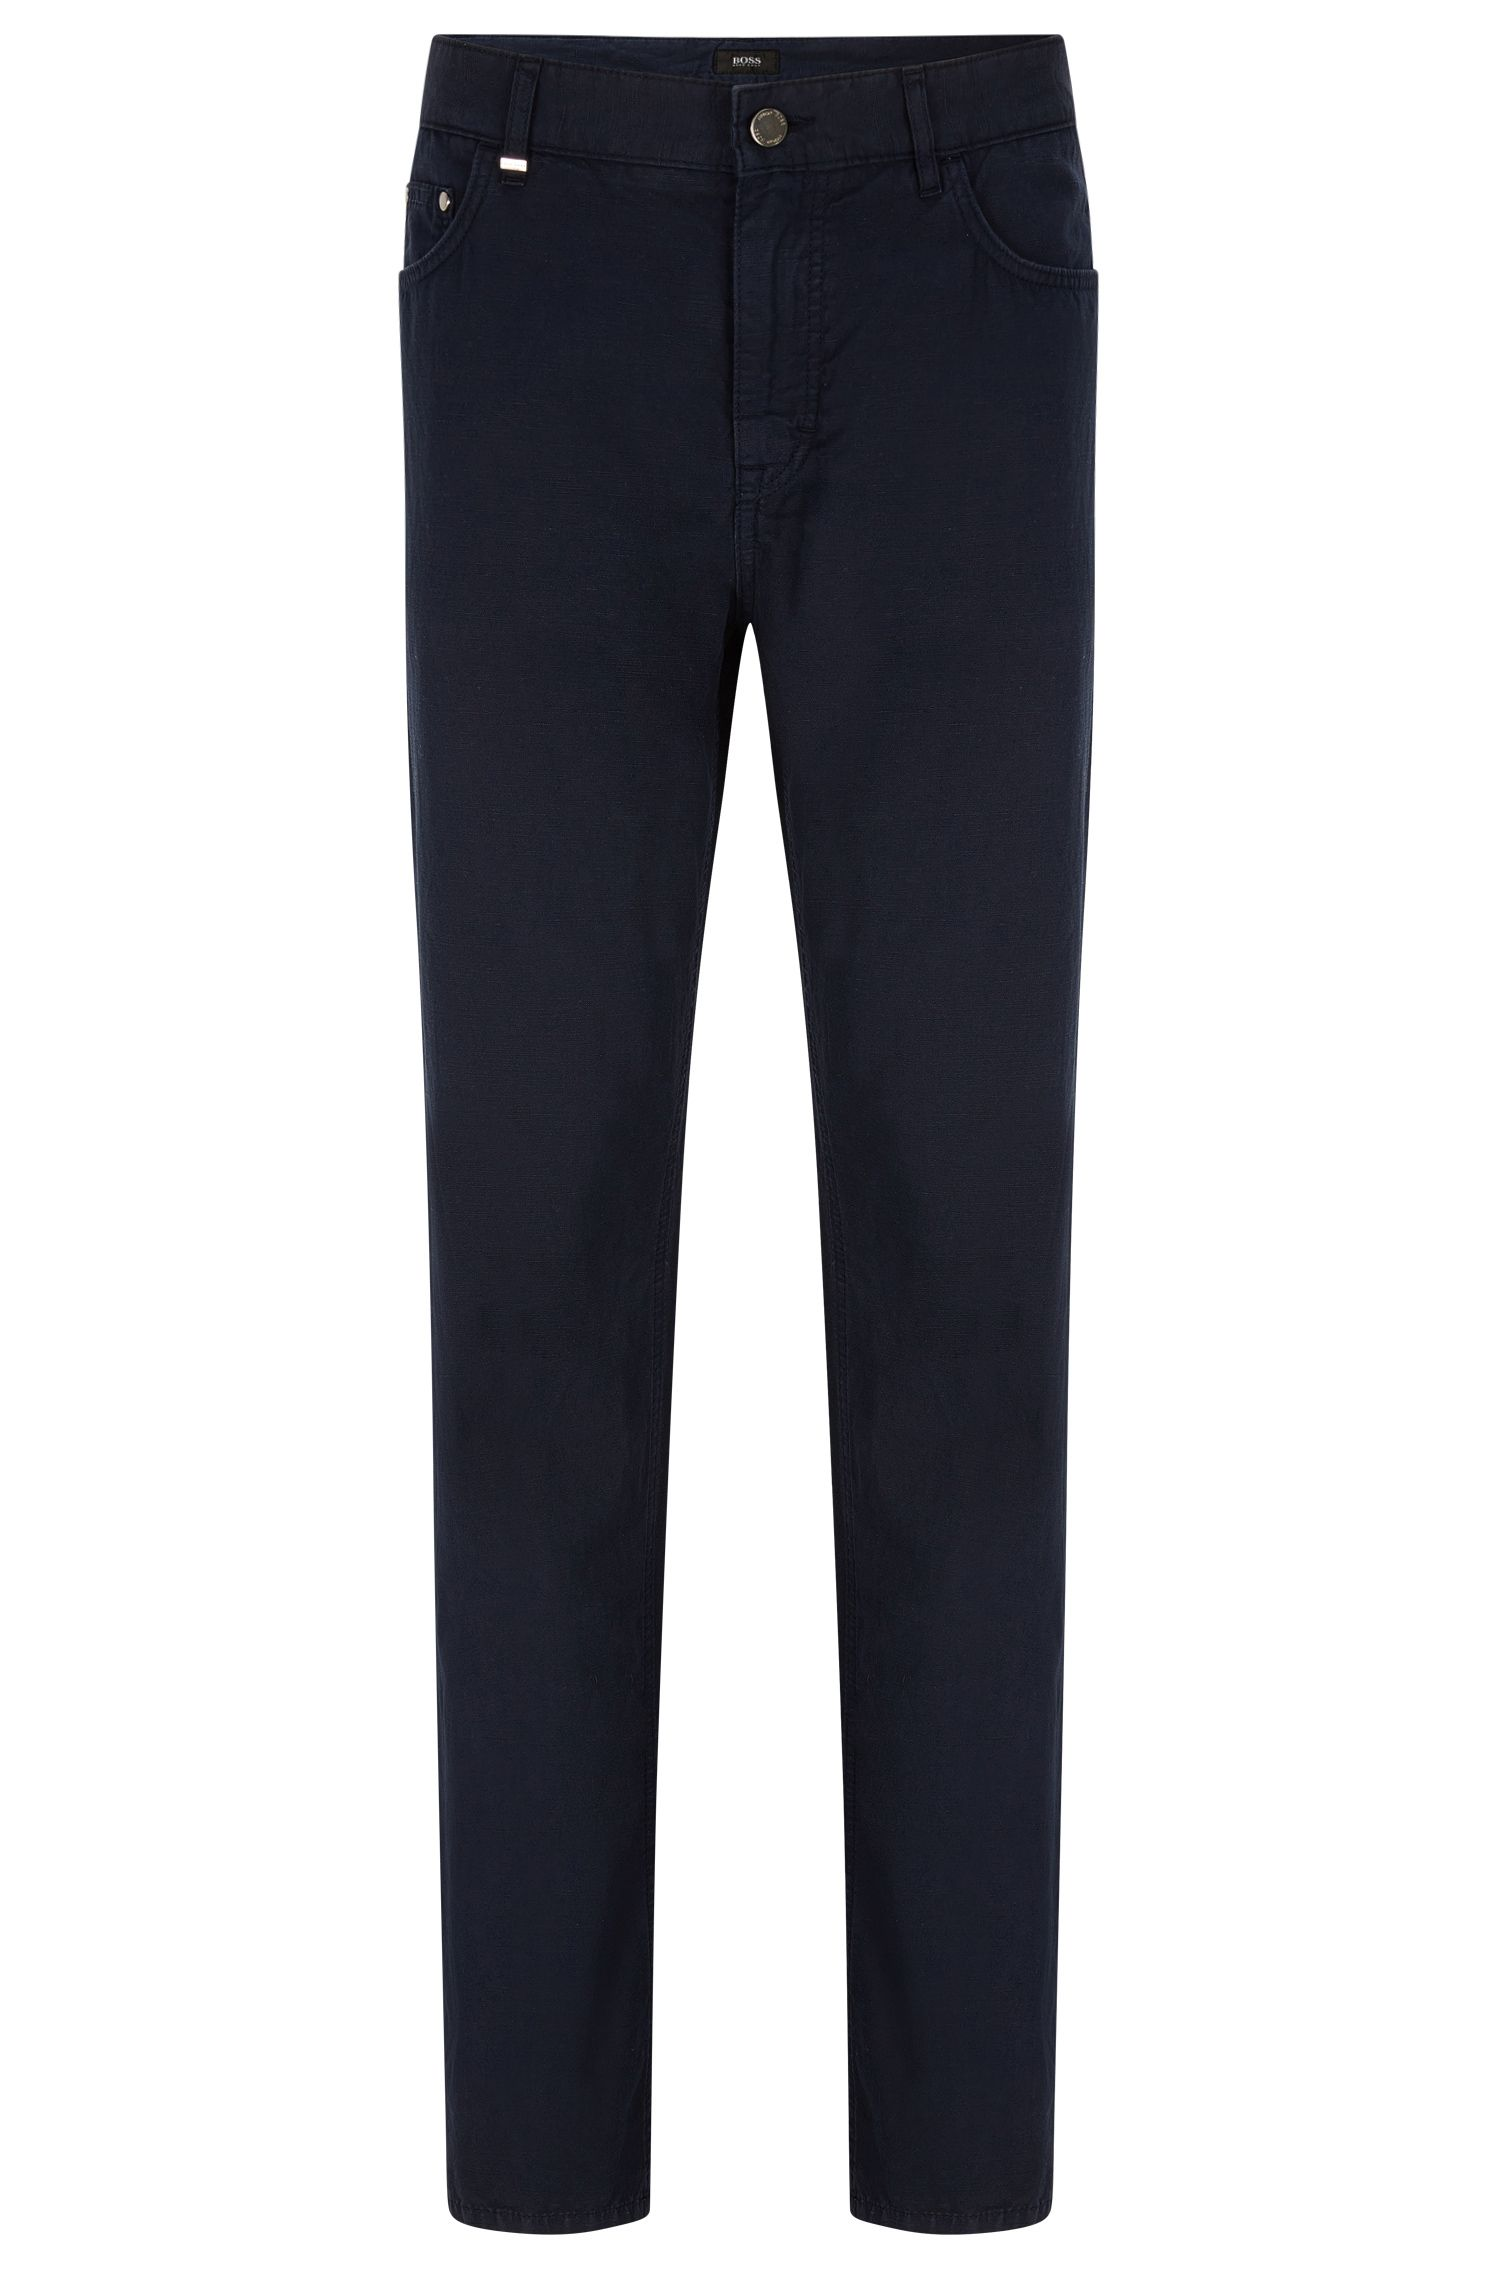 Cotton-Linen Jeans, Relaxed Fit | Albany